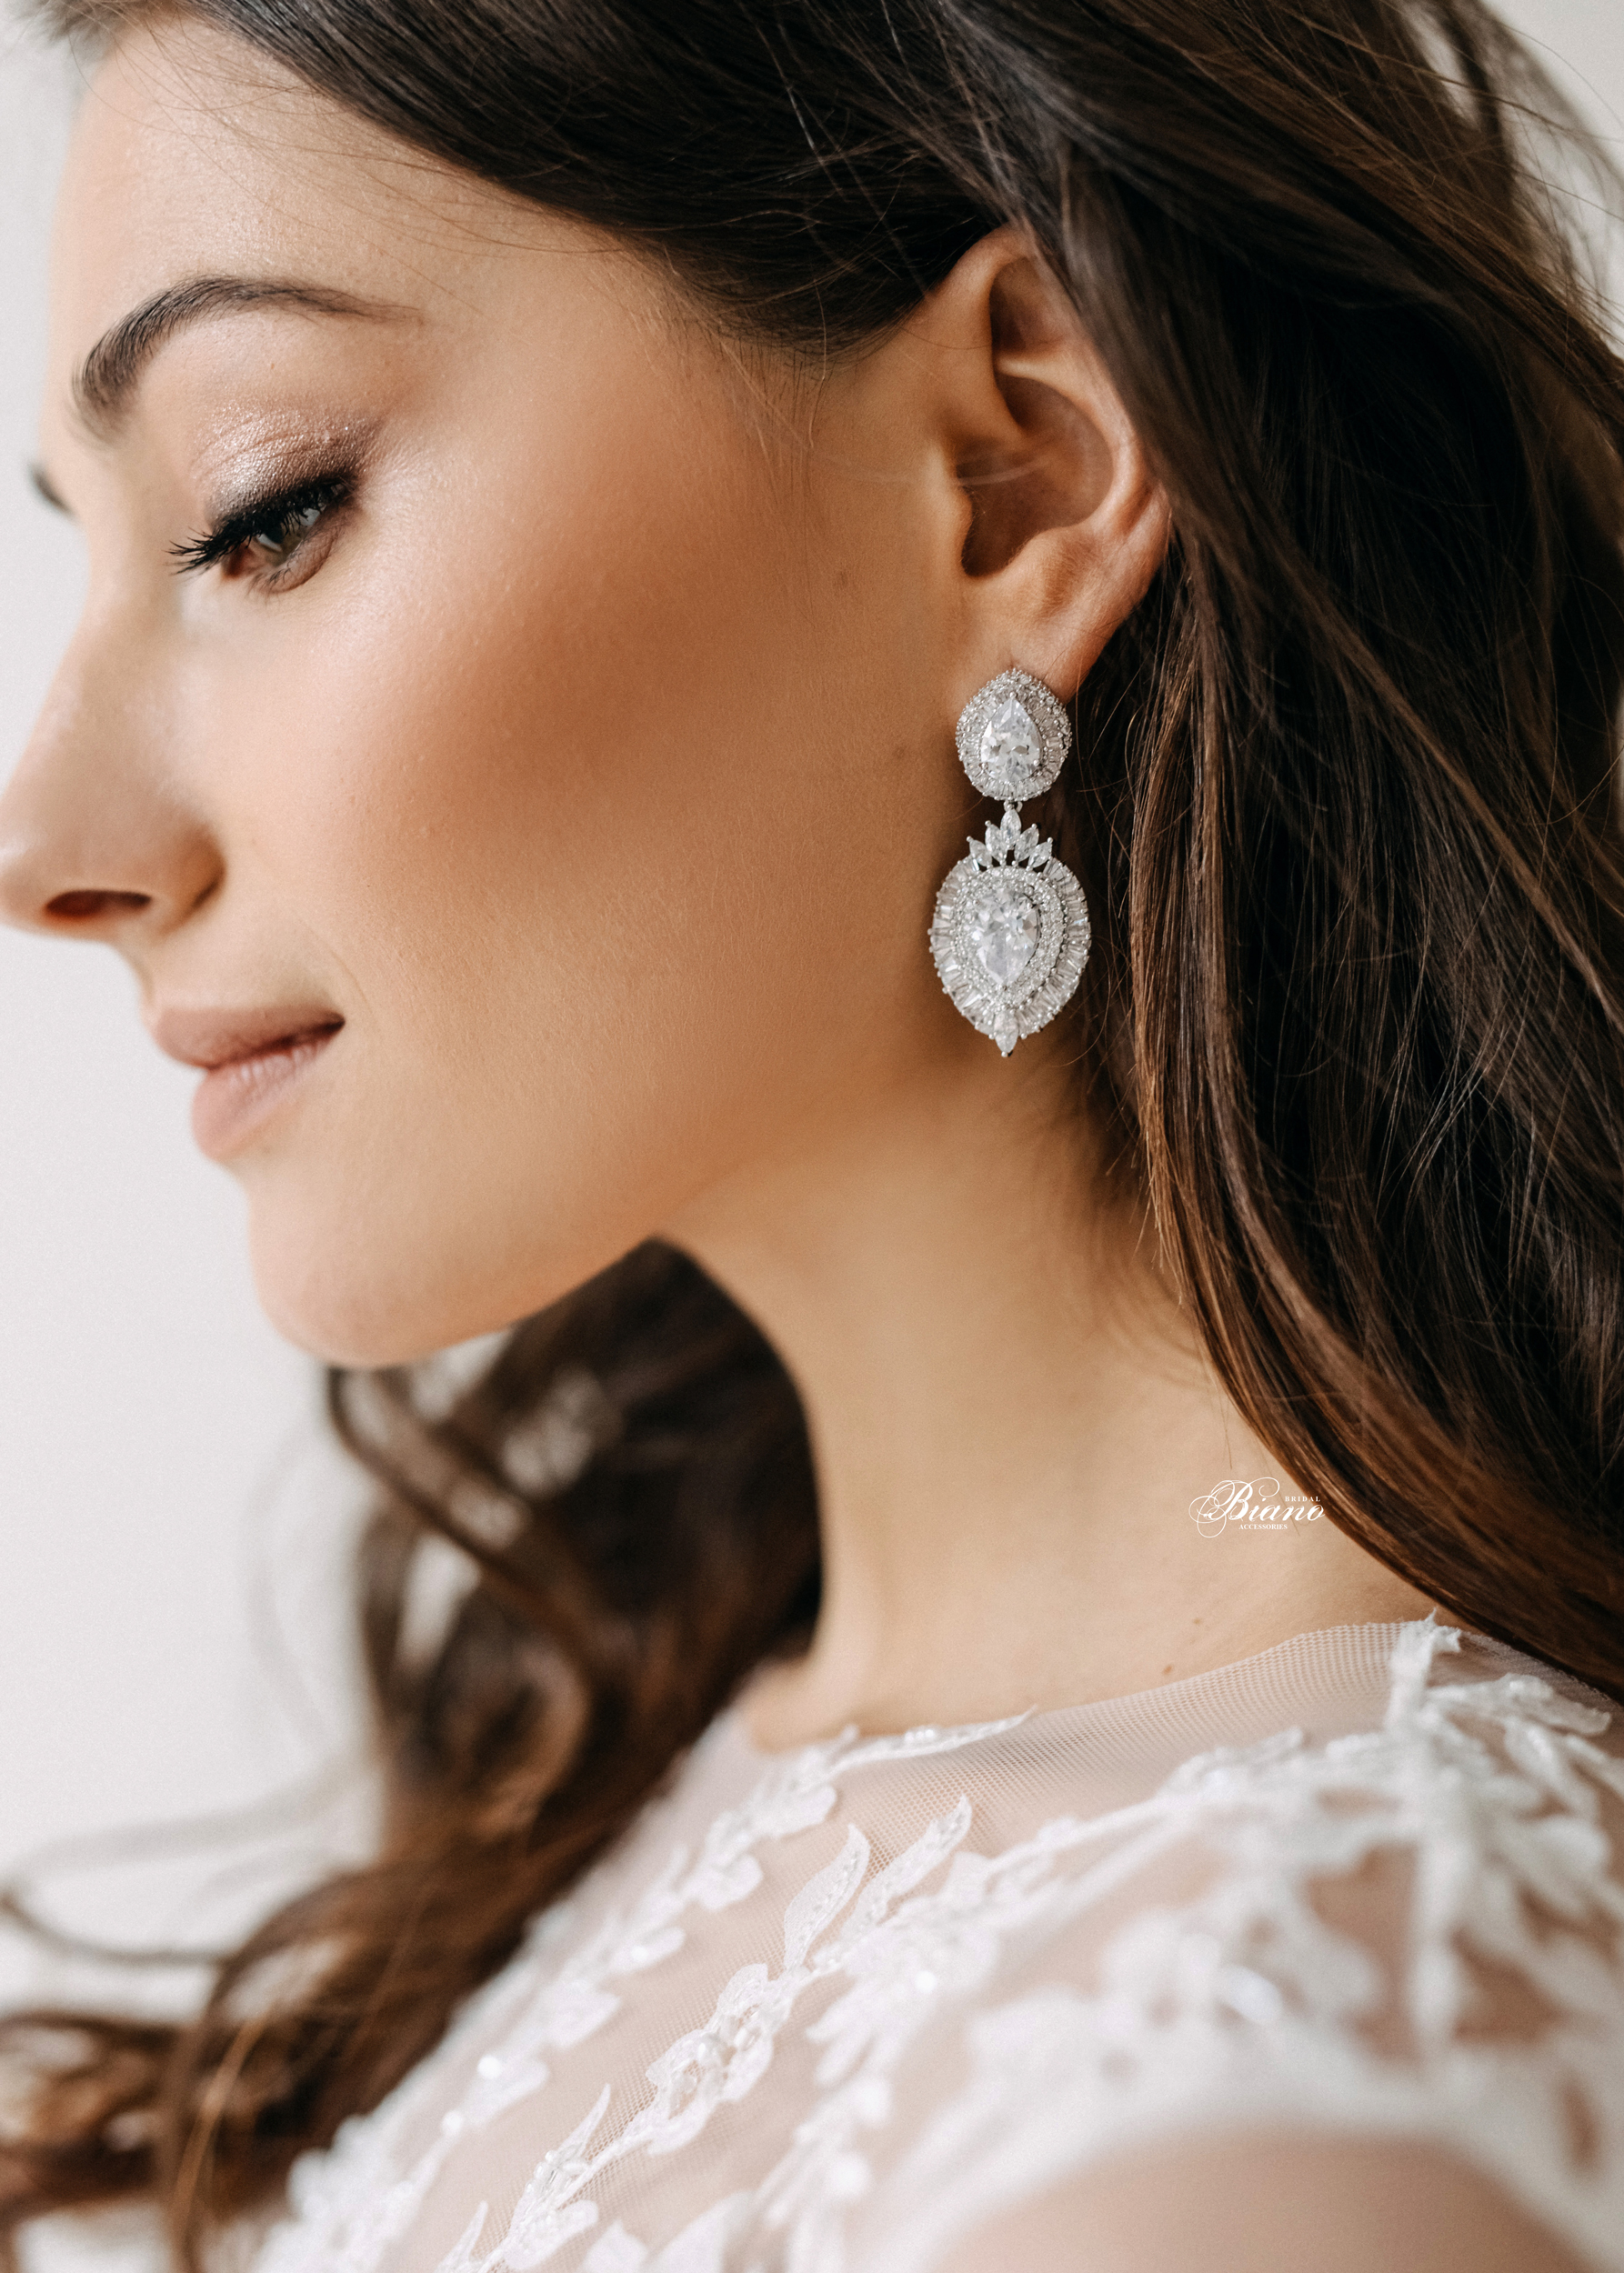 Find your perfect Crystal Earrings - Handmade in SwitzerlandUnique DesignPossibility to Rush OrdersFree Shipping WorldwideCustomisable OrdersFast response on your questions